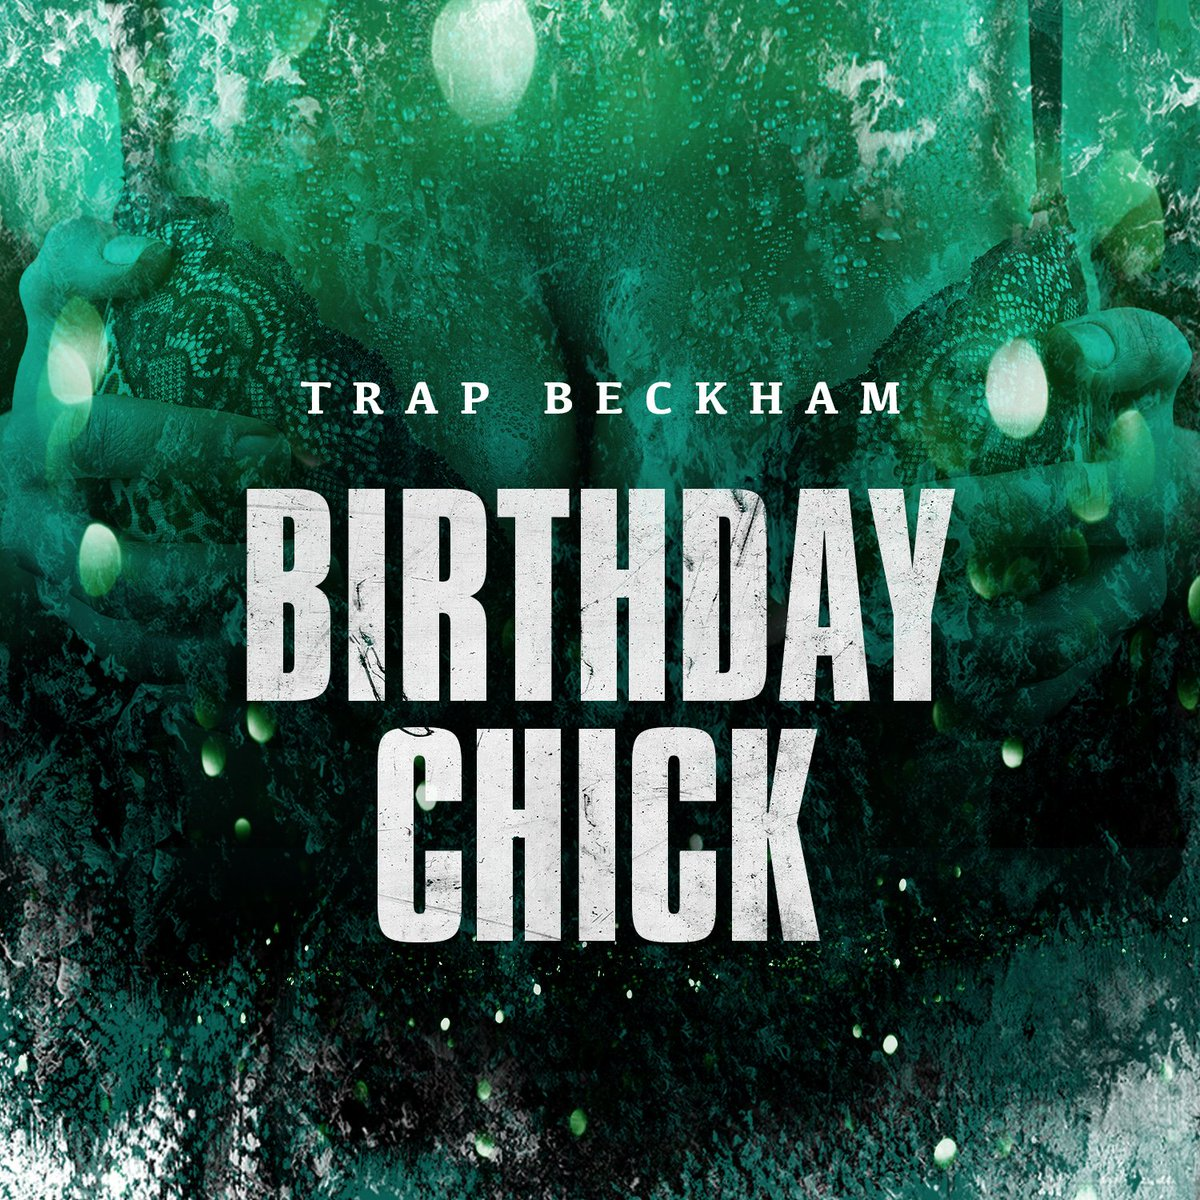 one time for the birthday chick Def Jam Recordings on Twitter: